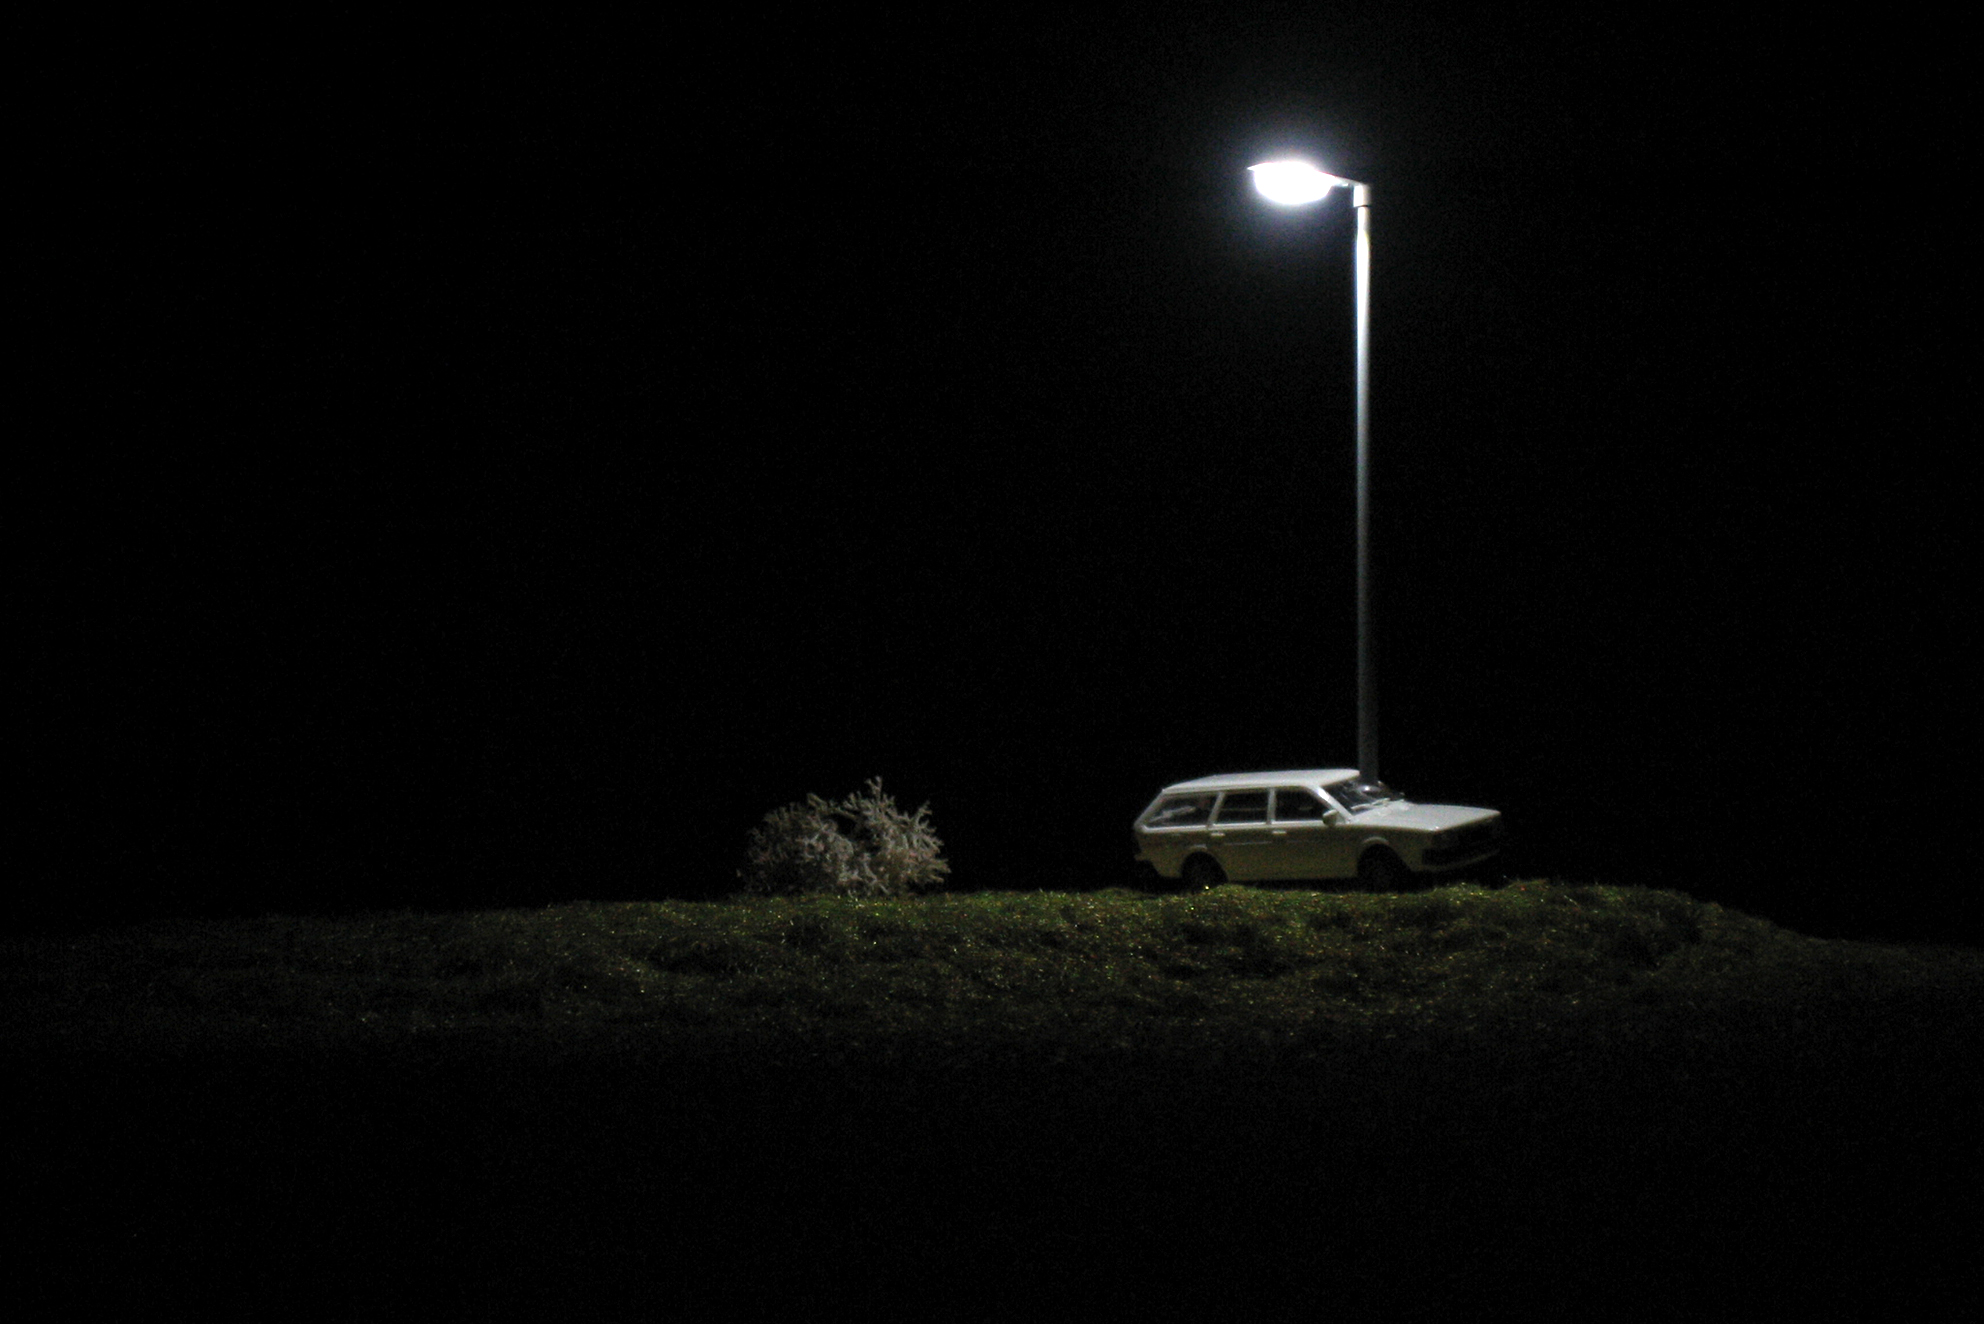 On the road again, installation, mix media, 10 x 20 x 20 cm / 230V, 2006, in collaboration with Swann Thommen